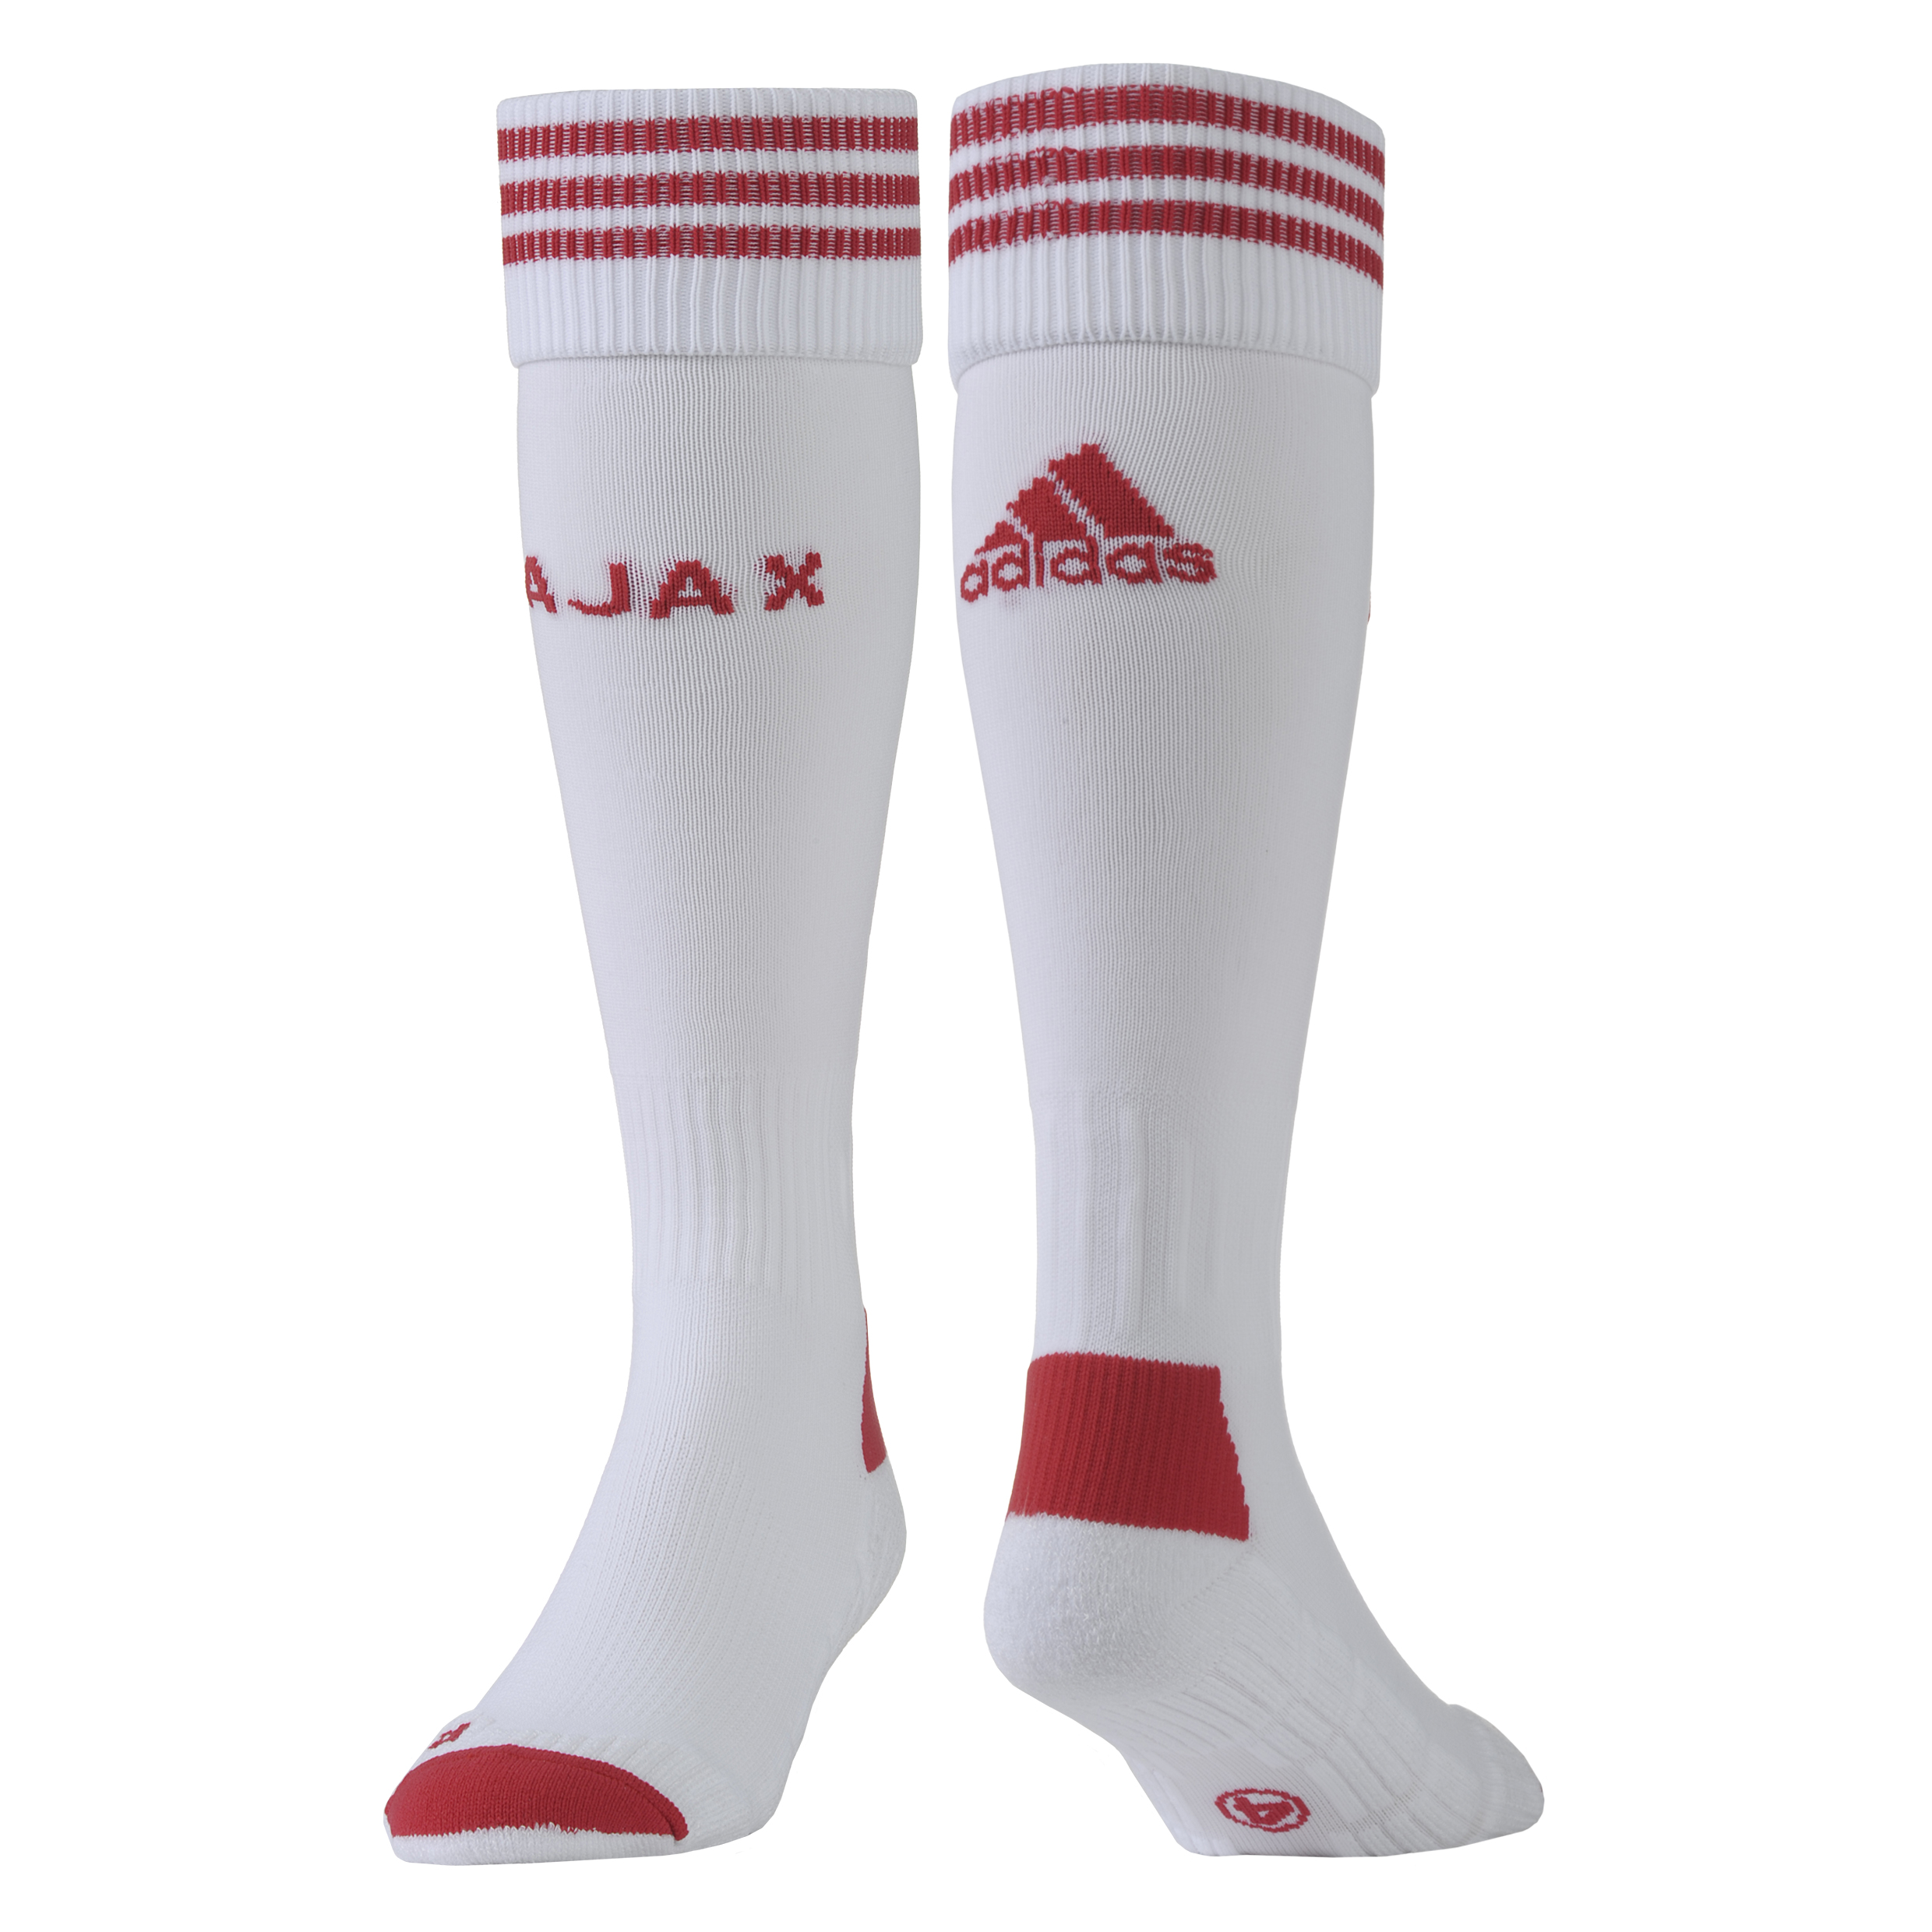 Ajax Home Sock 2012/13